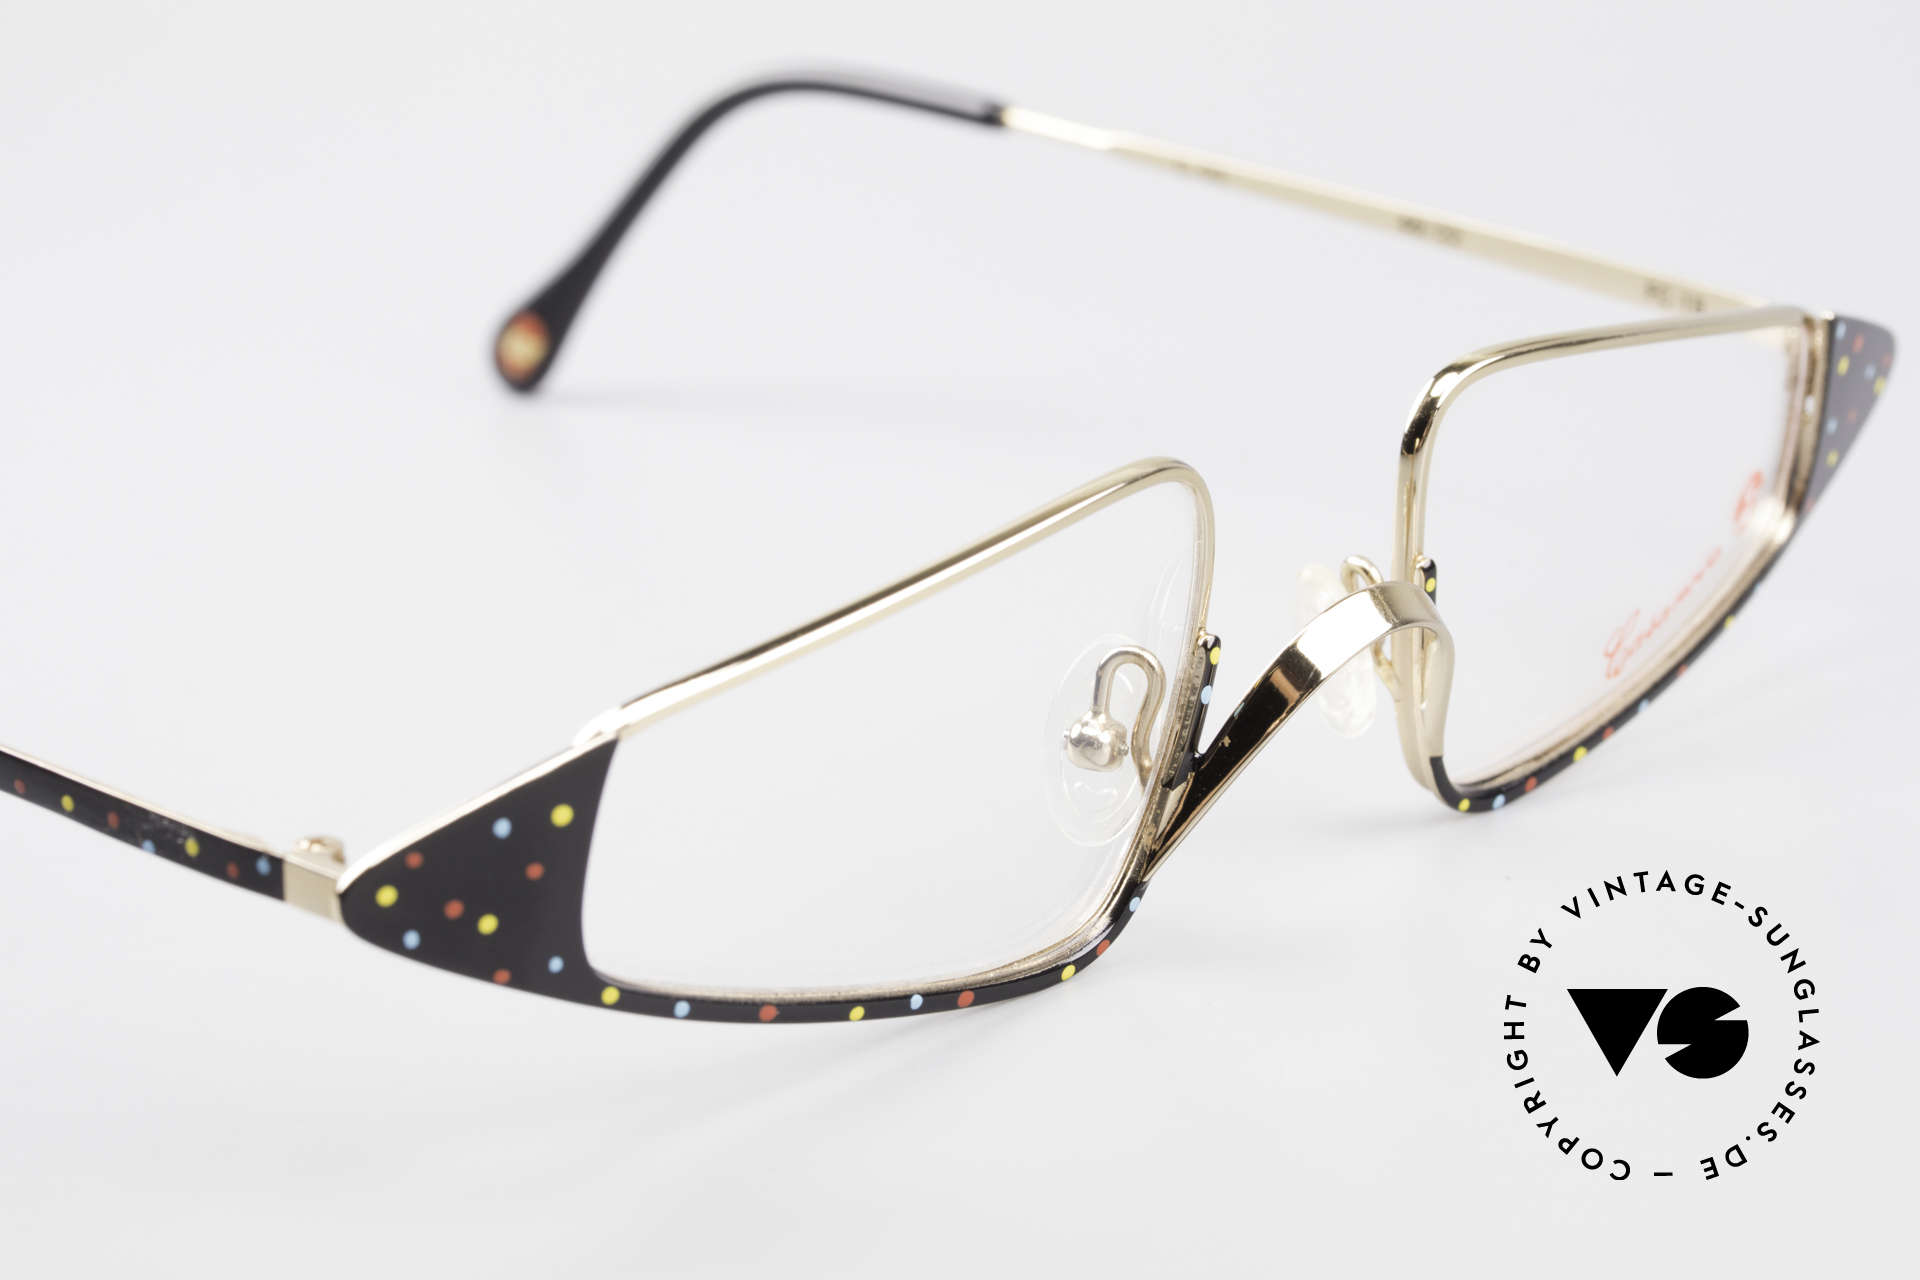 Casanova FC15 Fancy Vintage Reading Frame, meanwhile, a sought-after collector's item, worldwide, Made for Women